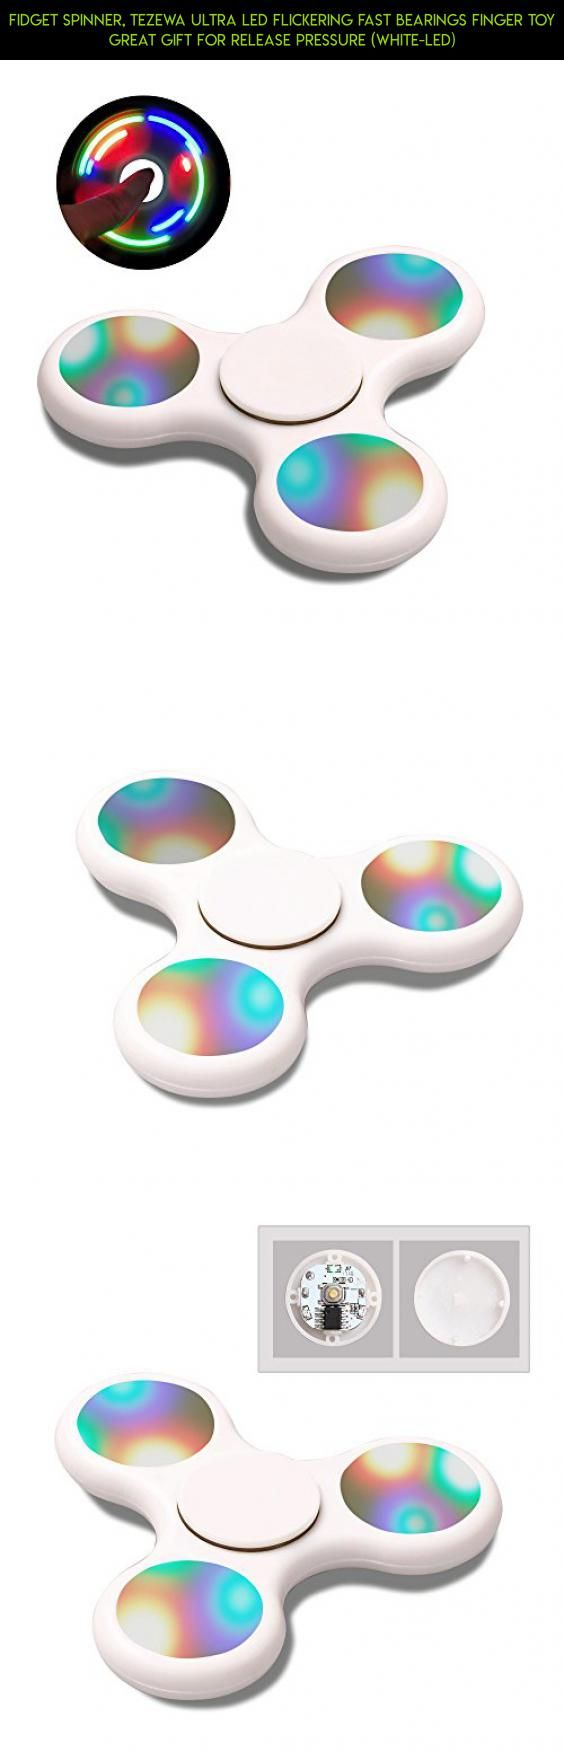 Fidget Spinner, Tezewa Ultra Led Flickering Fast Bearings Finger Toy Great Gift For Release Pressure (White-Led) #bearings #racing #no #gadgets #parts #drone #kit #products #spinner #tech #plans #fpv #shopping #technology #plastic #camera